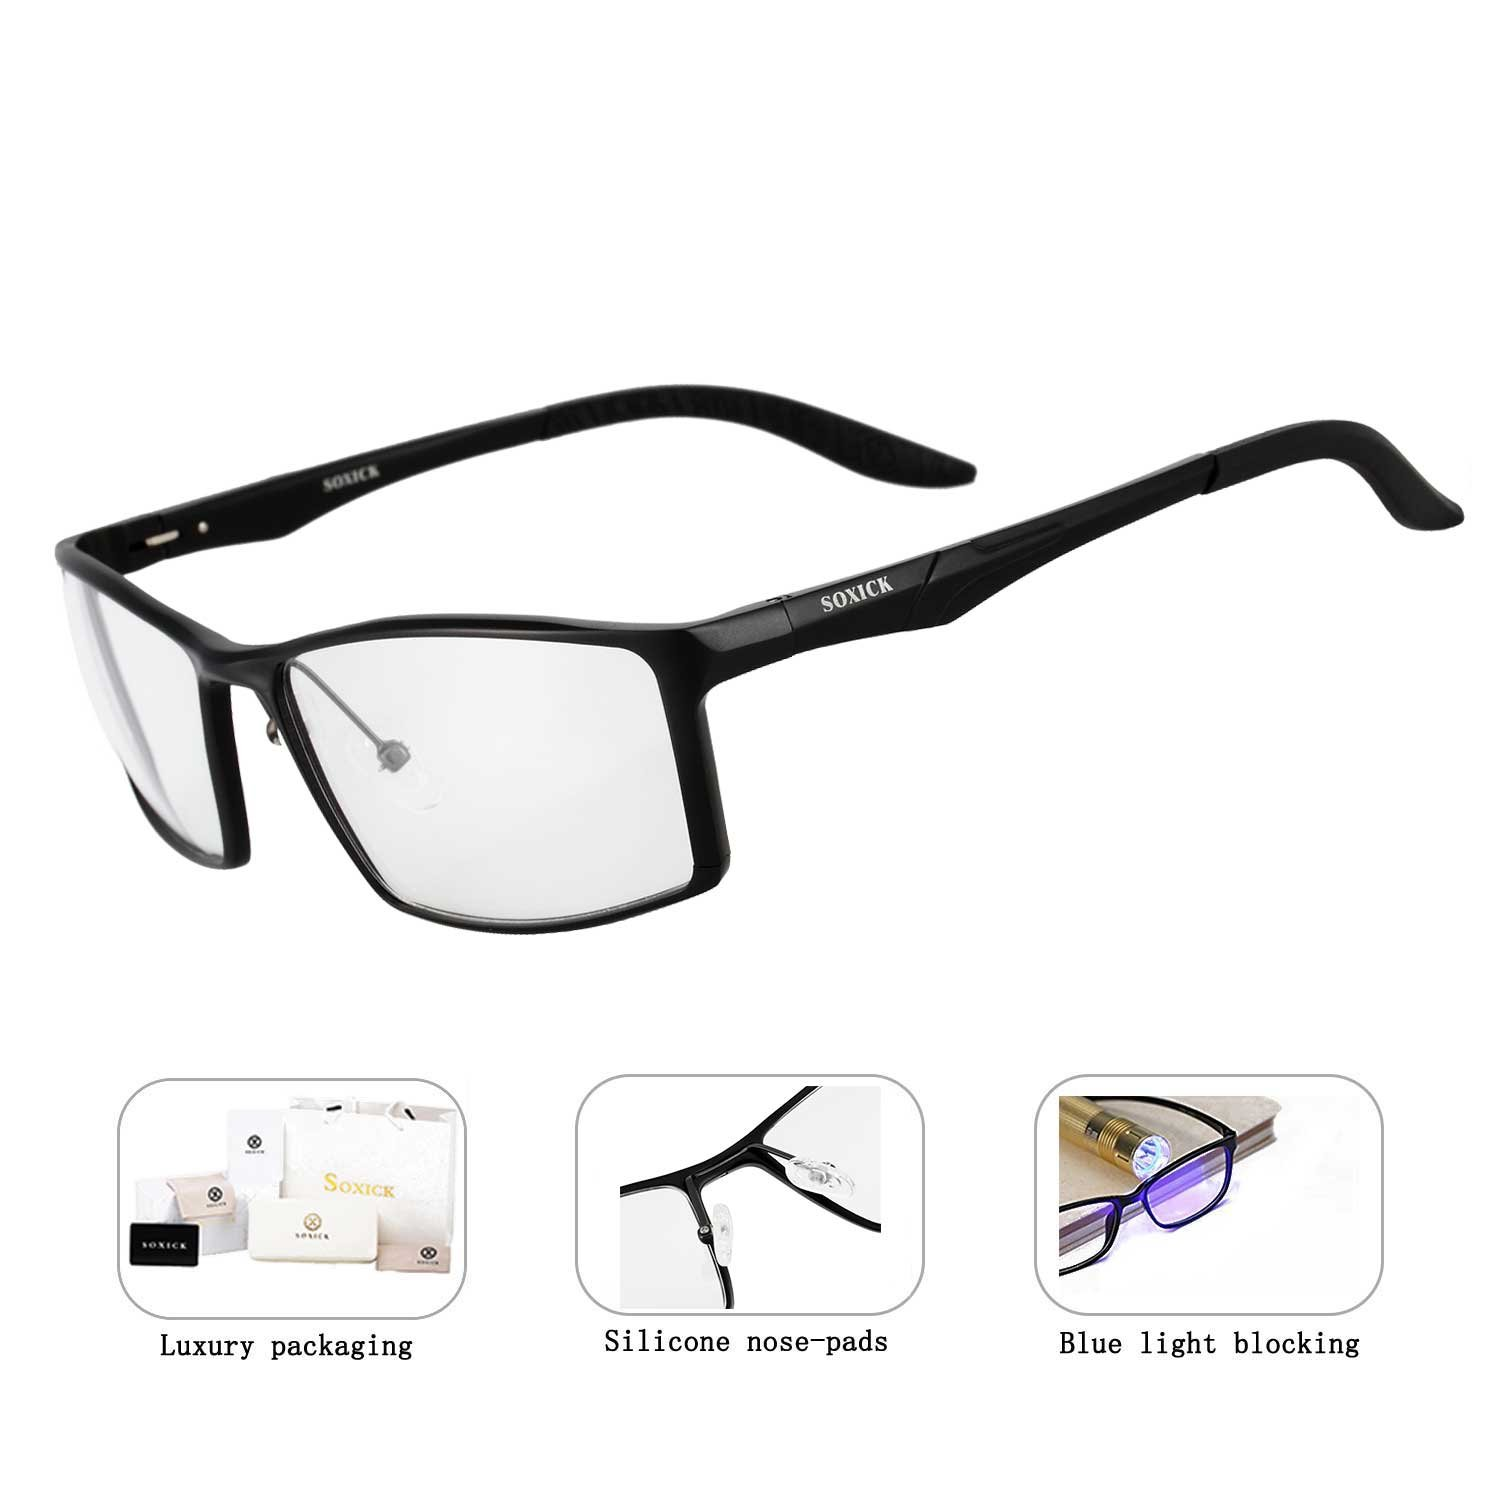 SOXICK Blue Light Blocking Anti-Glare Glasses for Professional Computer Games Monitor Screen Eye Strain Relief - Magnification 0.00 (XG2932)